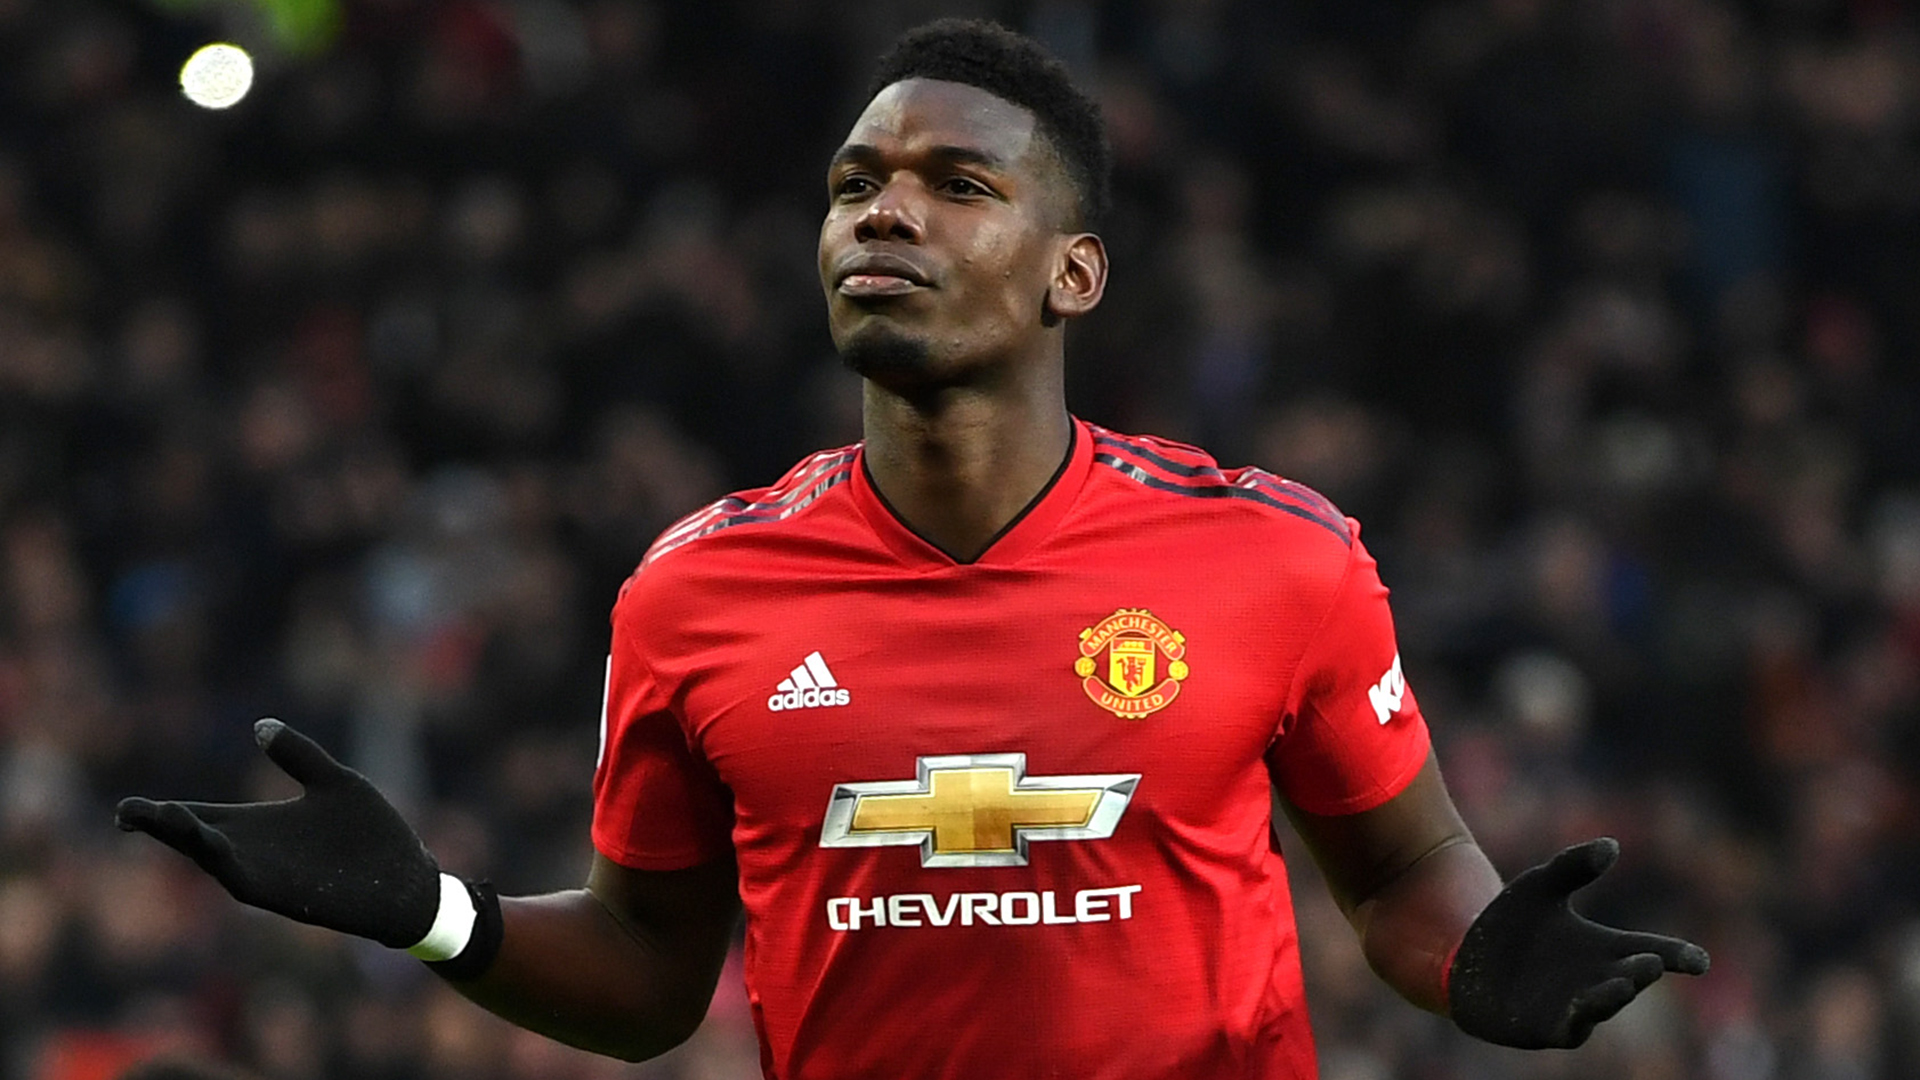 January Transfer Window News & Rumours LIVE: Pogba U-turns